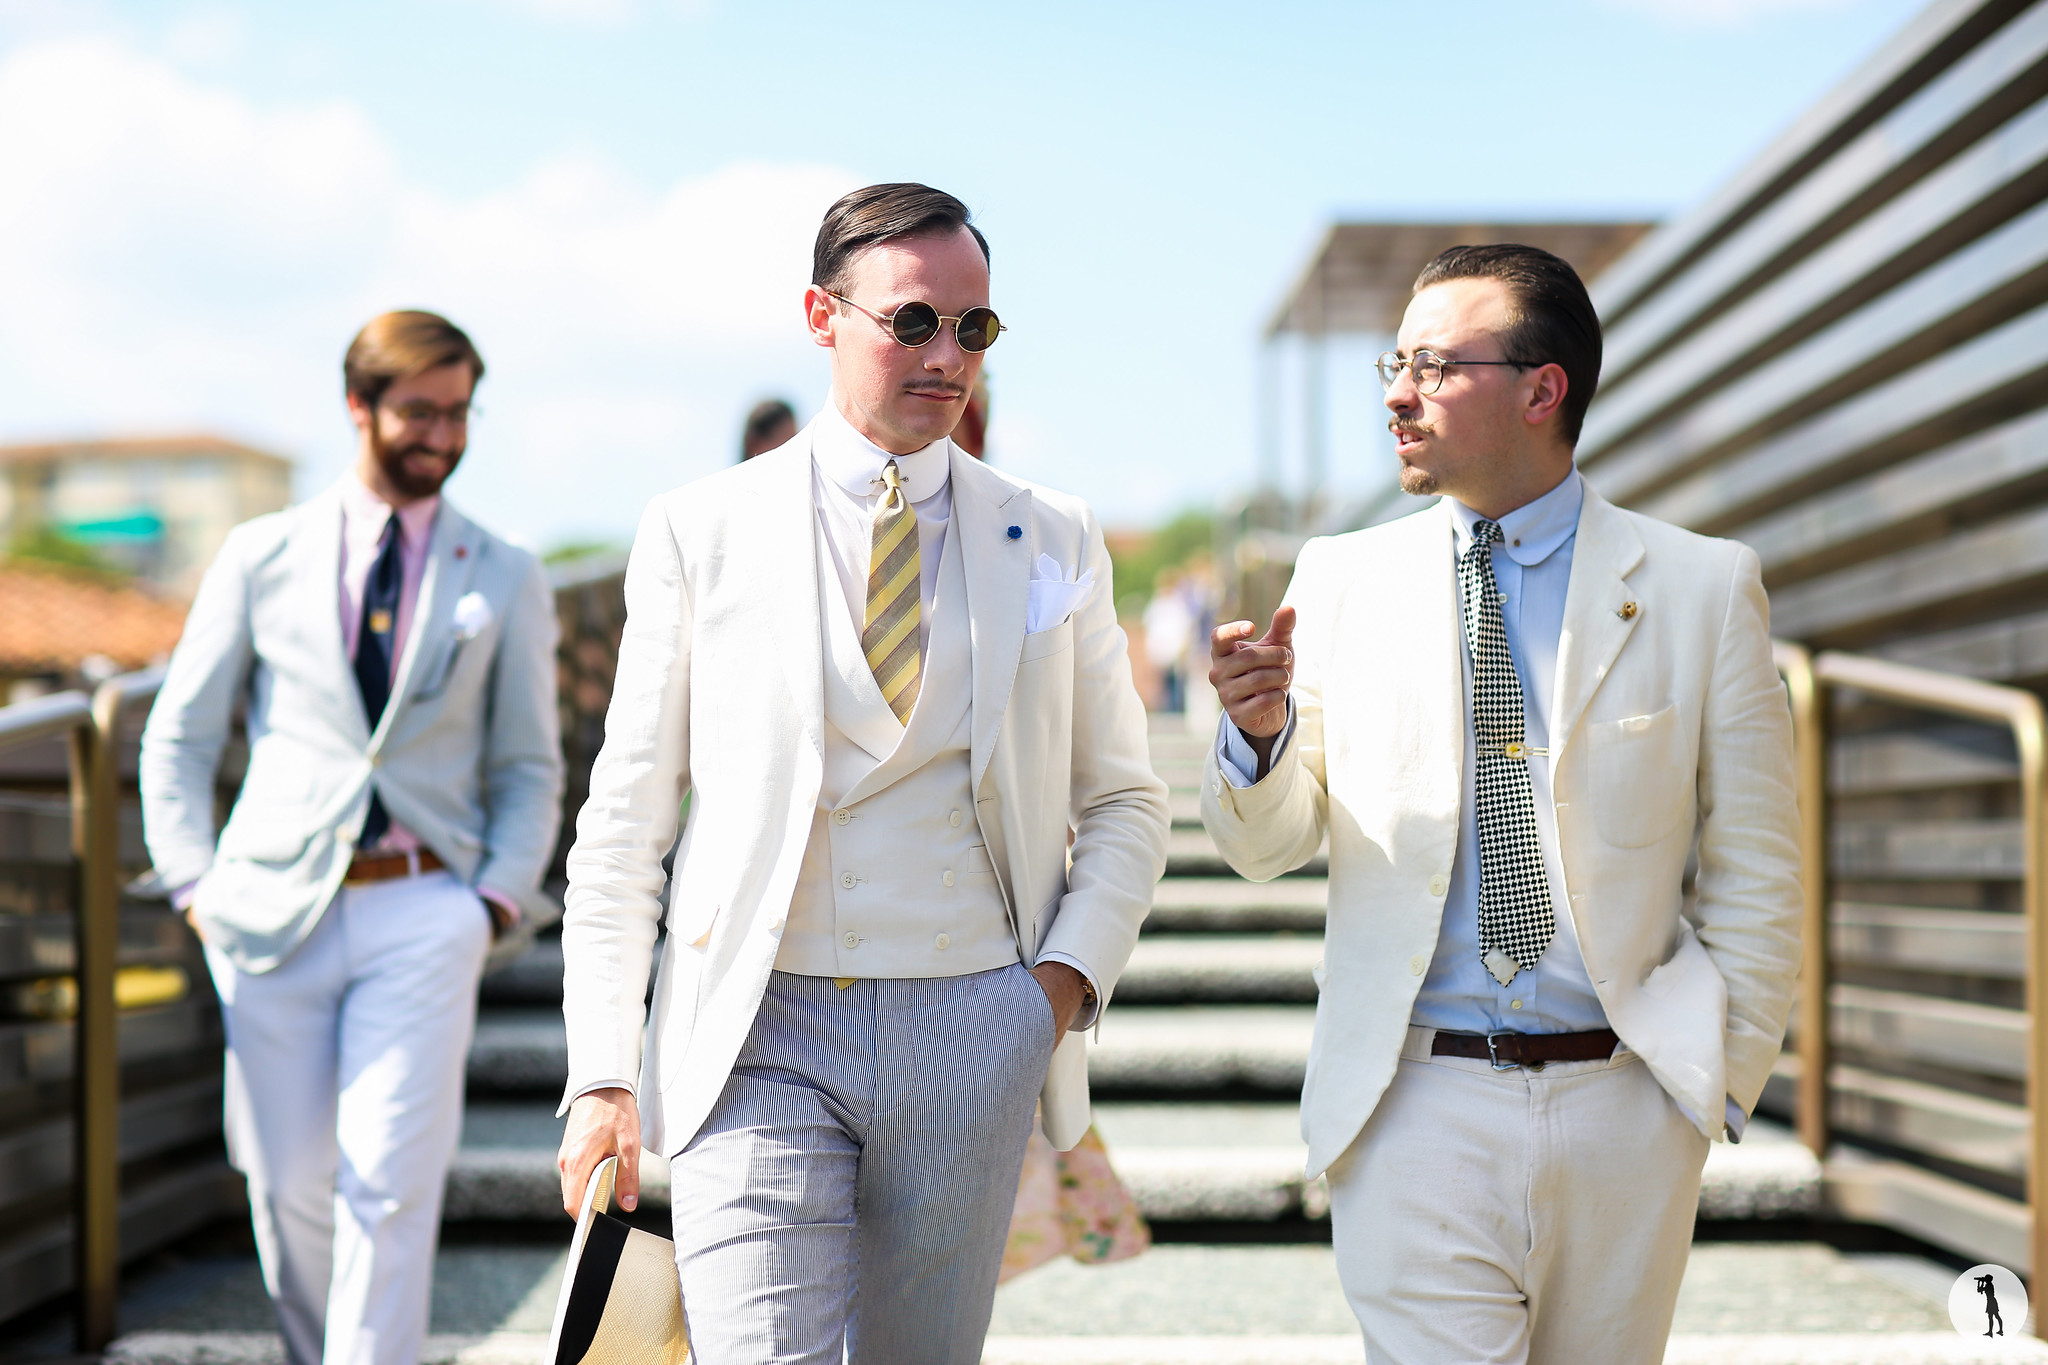 Michael-Francois Loir at Pitti Uomo 88